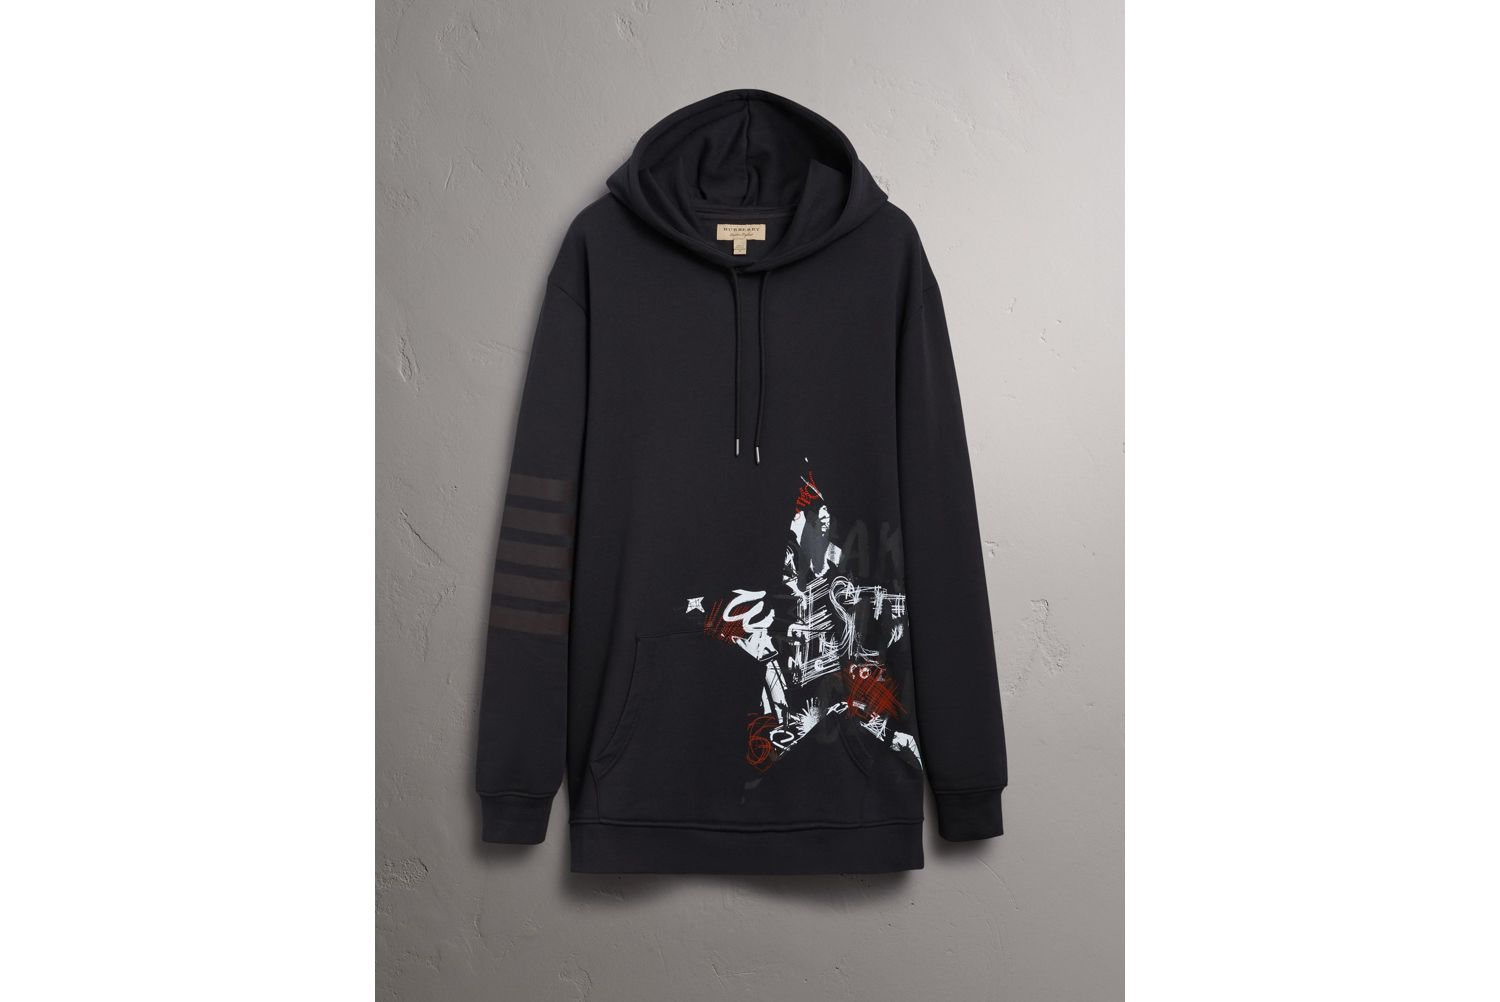 Burberry x Kris Wu Hooded Sweatshirt in Black